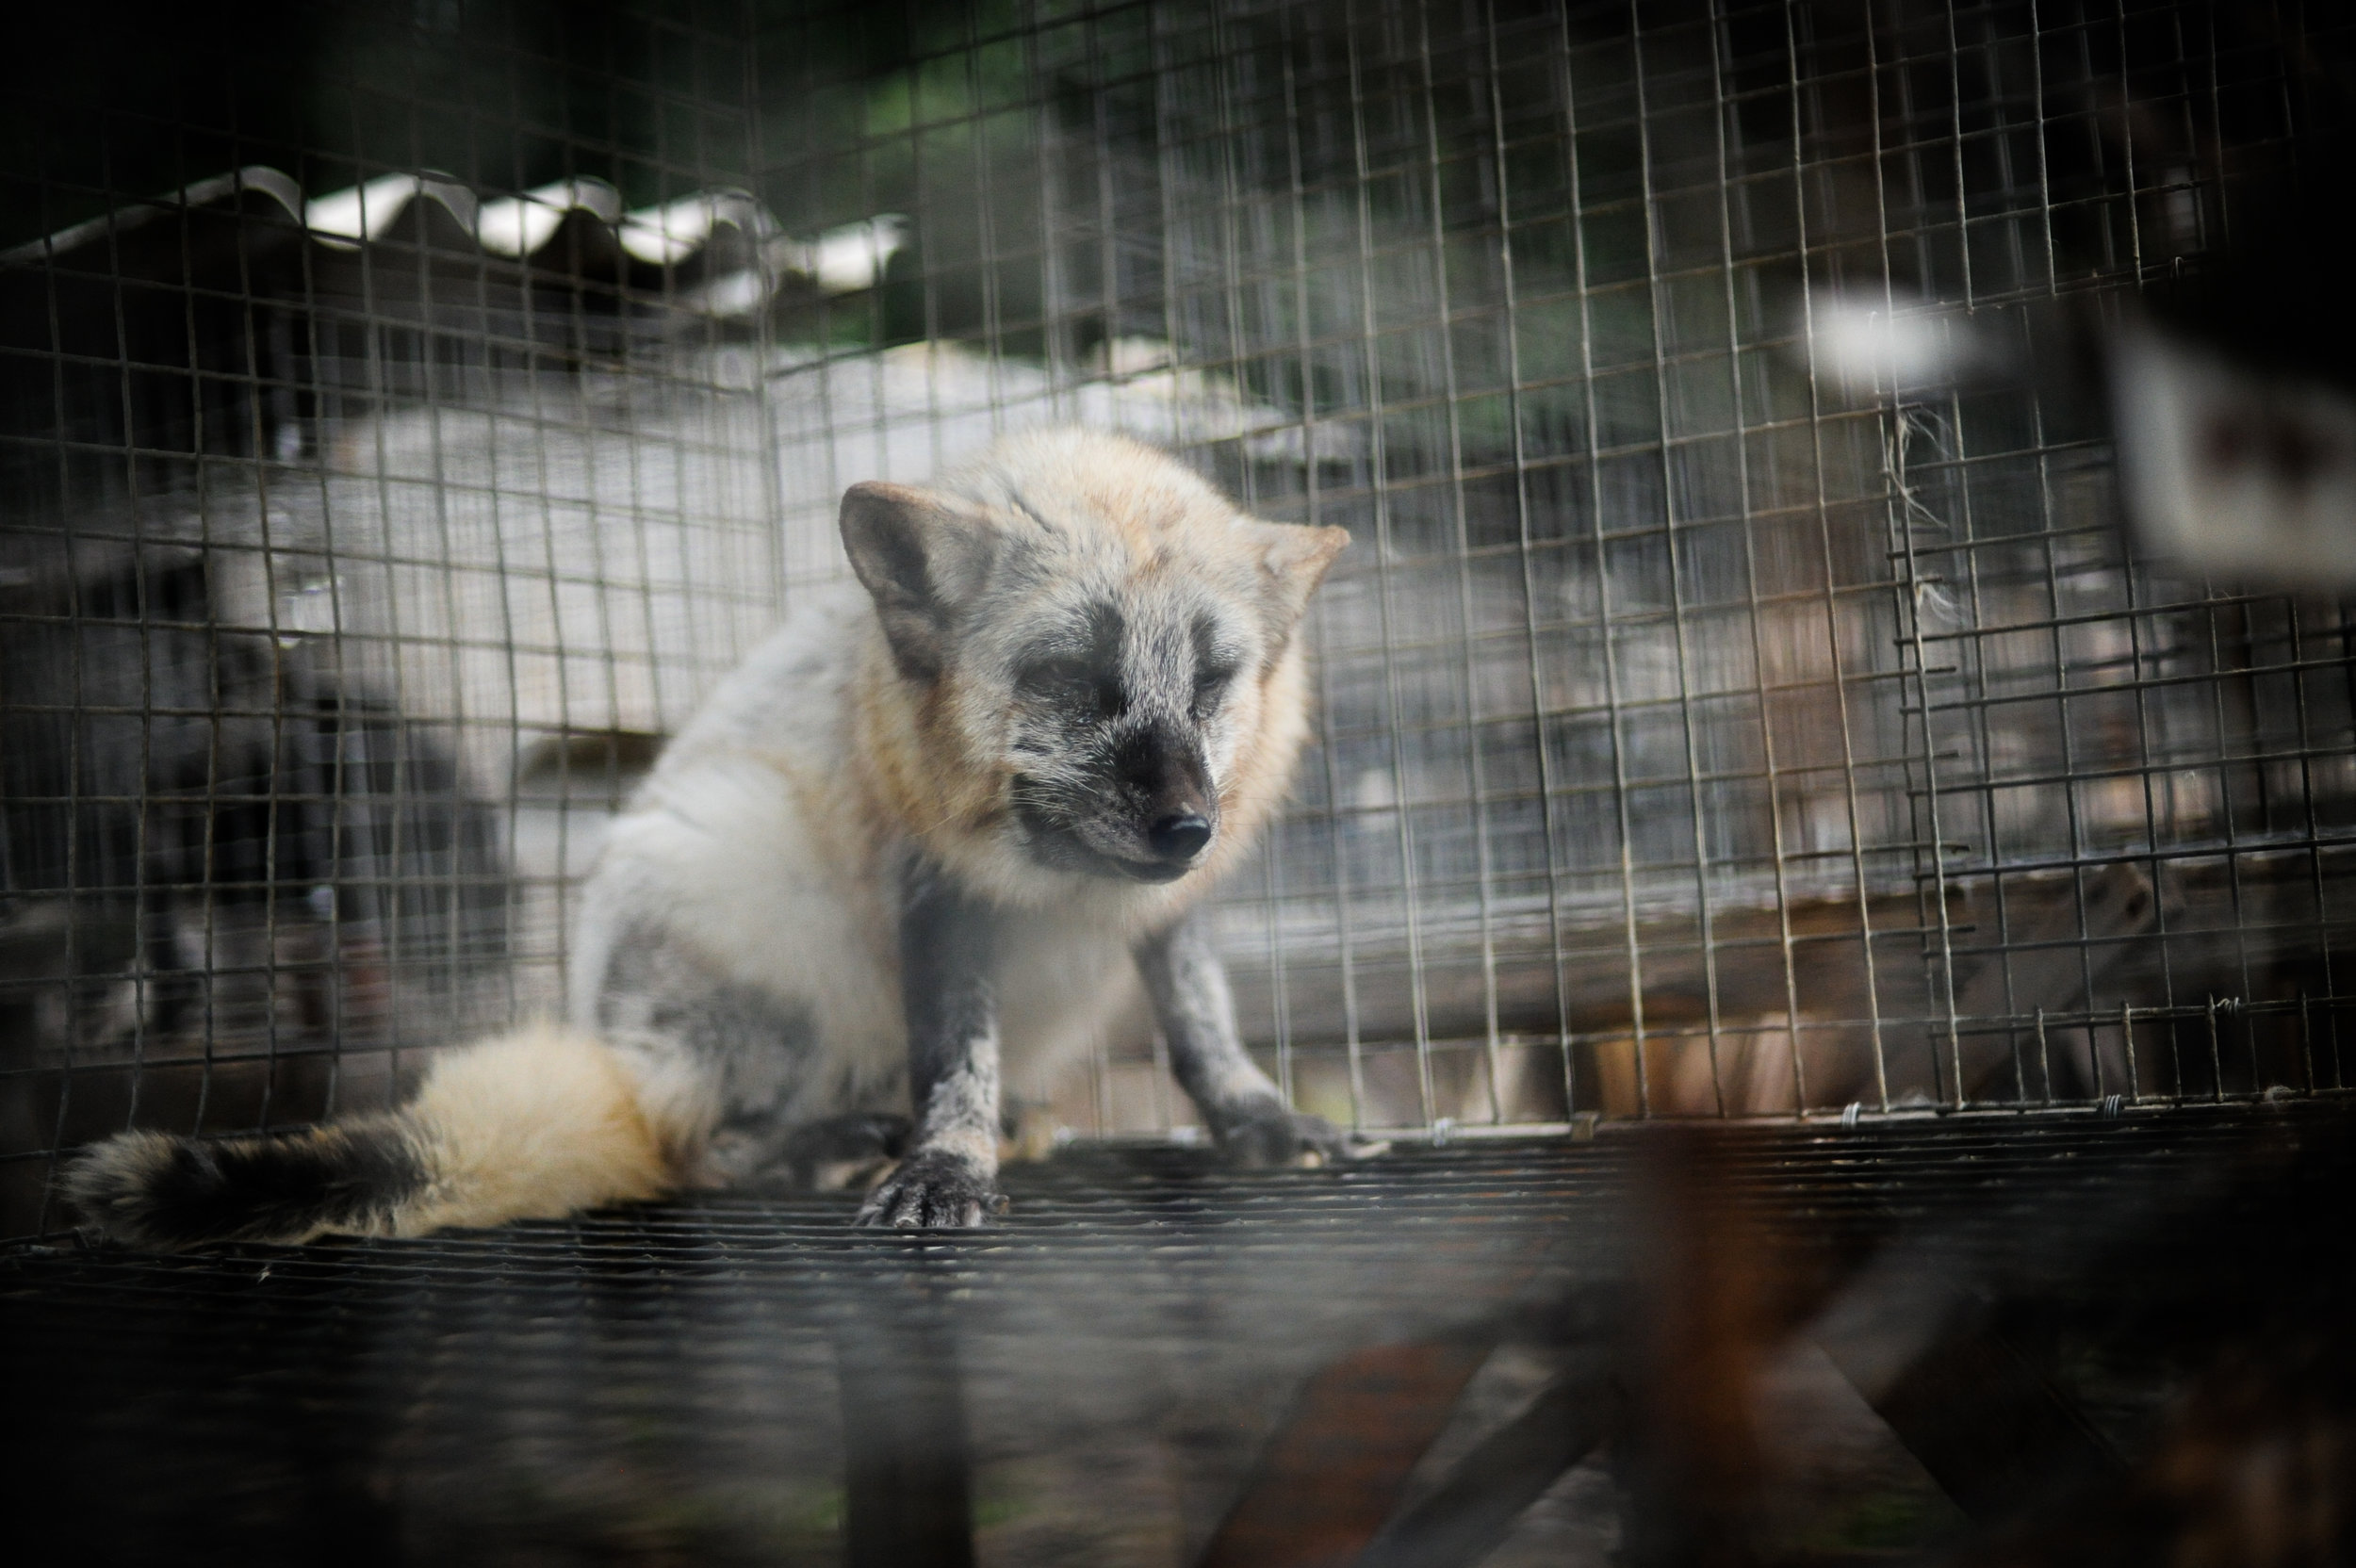 A fox on a fur farm in a wire cage. ©Jo-Anne McArthur/WeAnimals